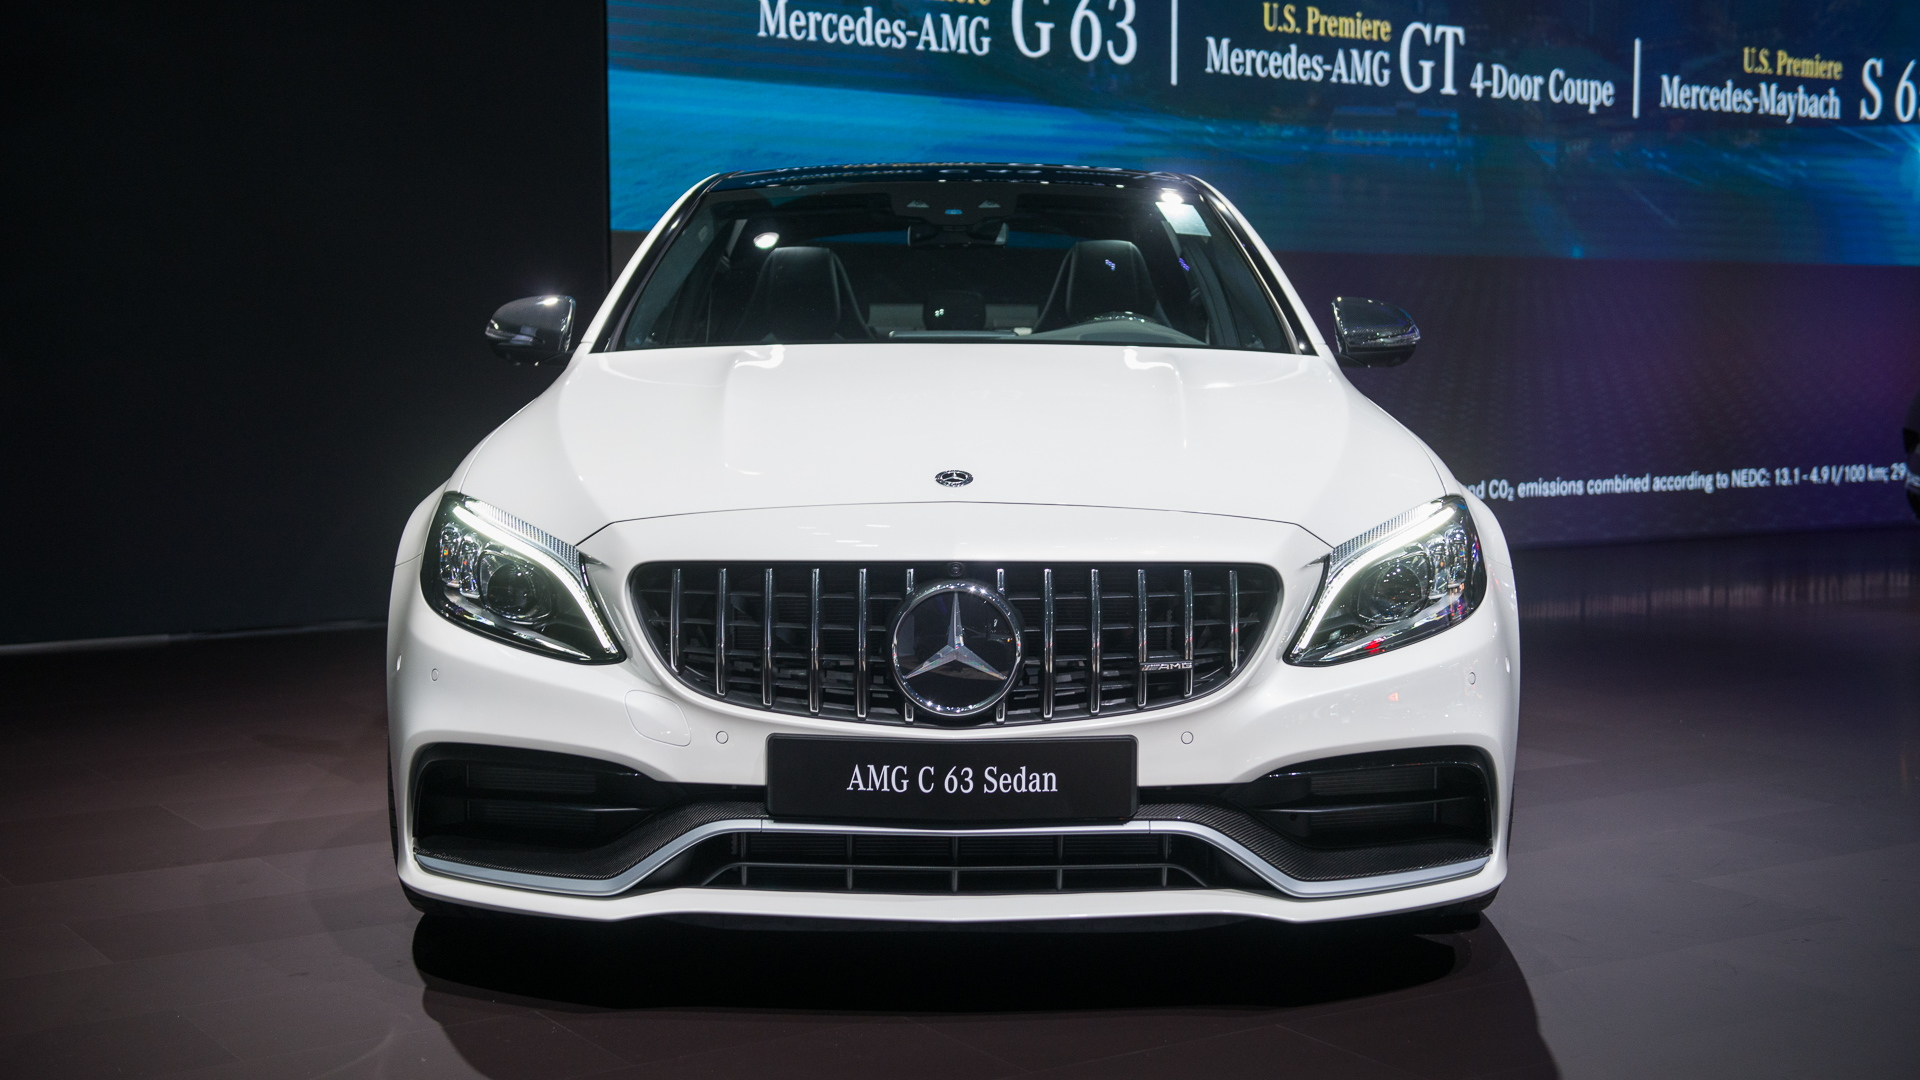 2019 Mercedes-AMG C63, 2018 New York auto show